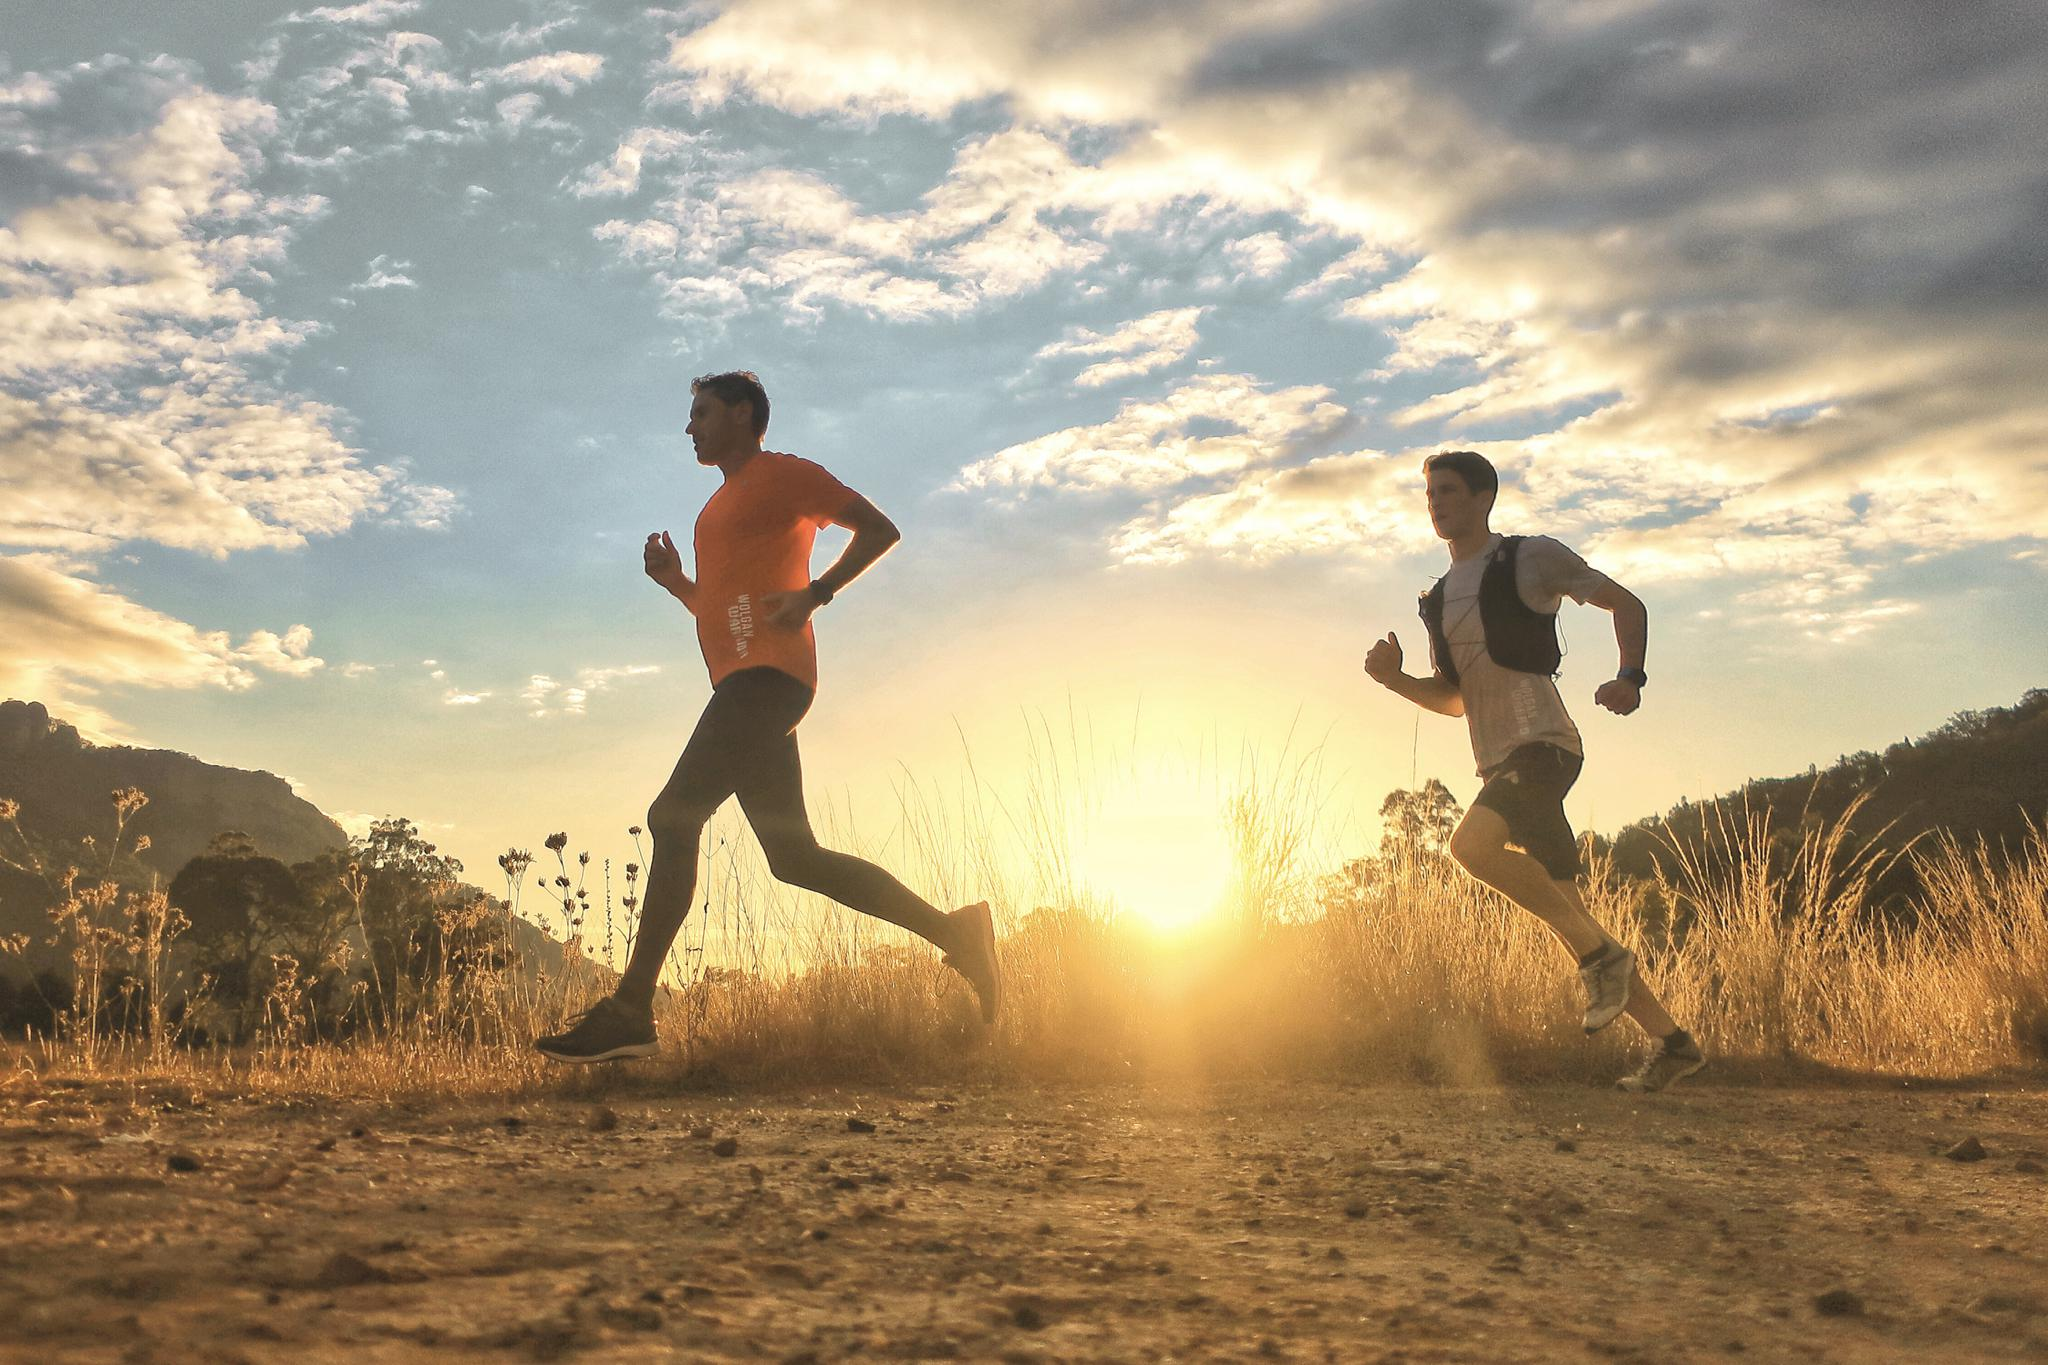 Calling Fitness Fanatics: An Exclusive 21-Kilometre Trail Run is Launching in the Blue Mountains